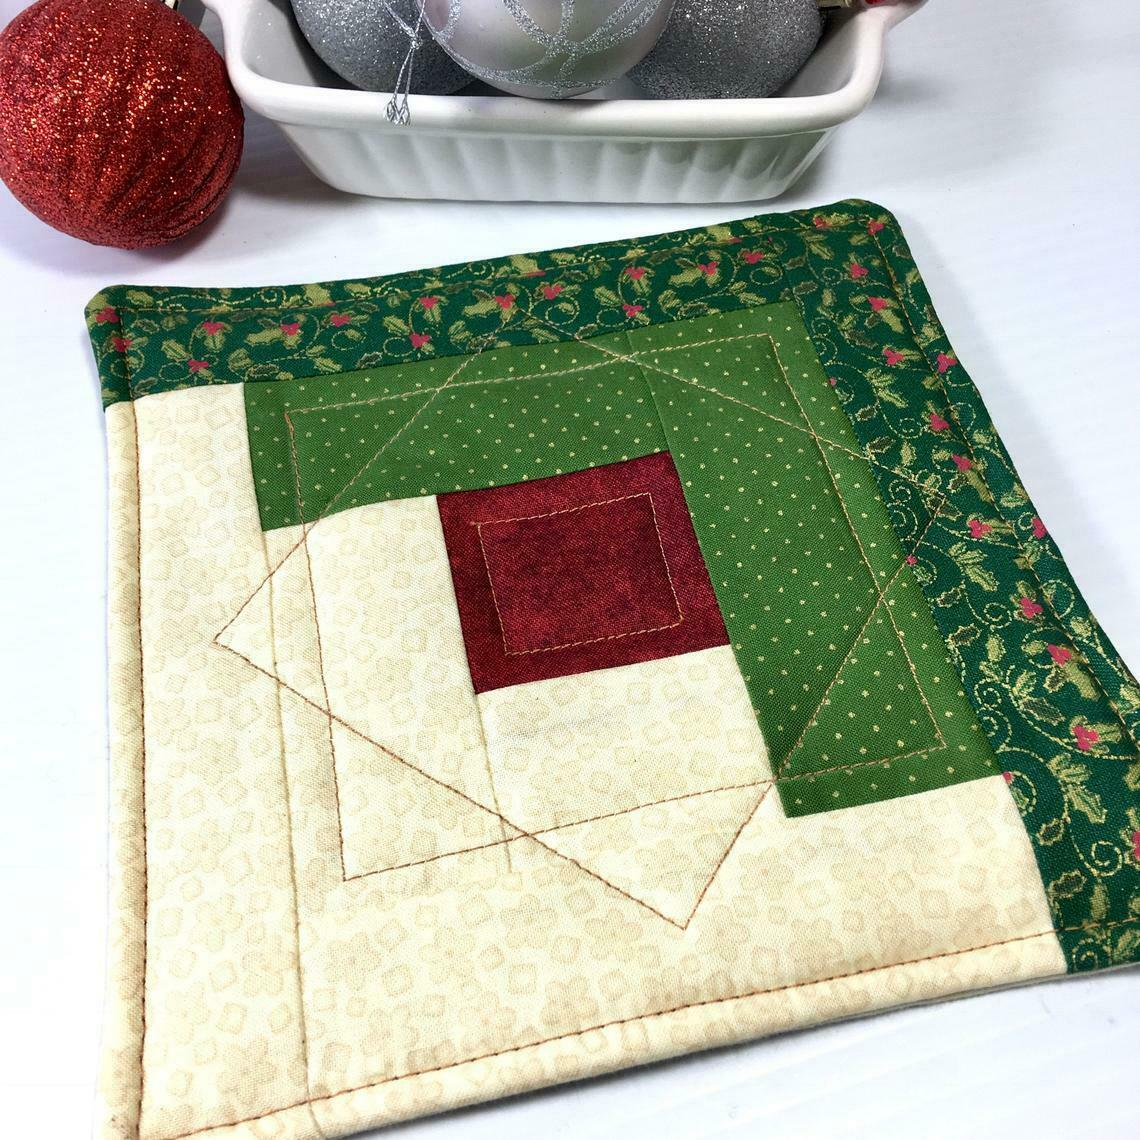 Christmas Pot Holder Quilted Handmade Holiday Log Cabin Block Heat Resistant image 9